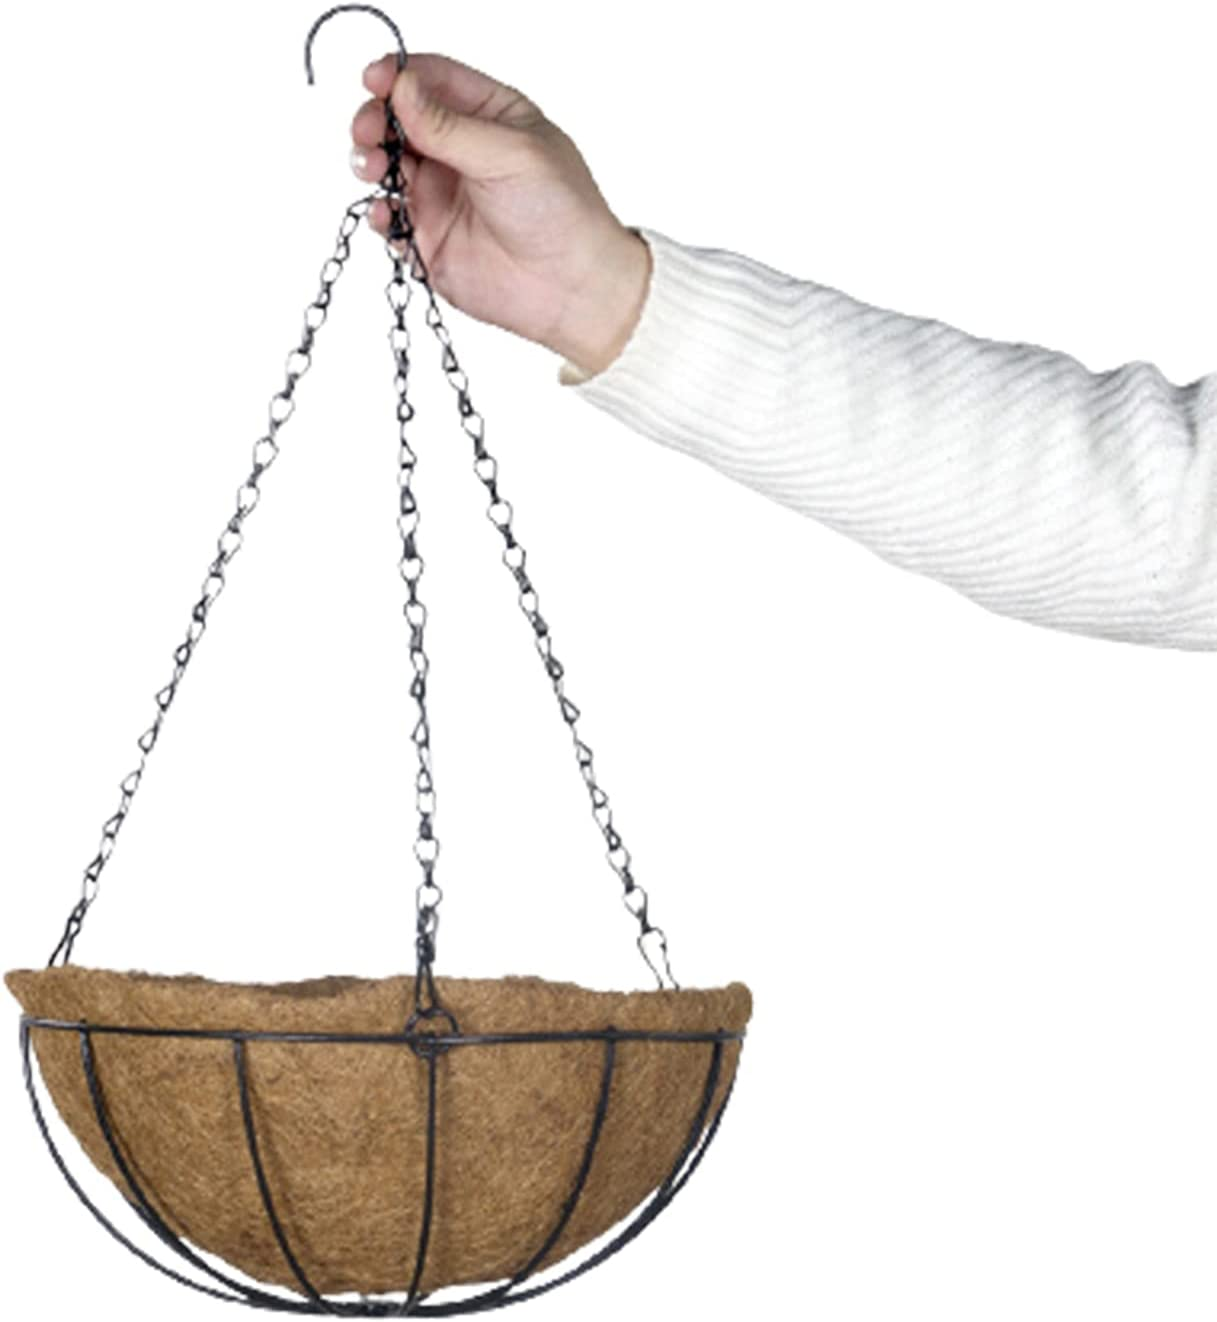 Hanging Coconut favorite Flower Pot Challenge the lowest price Iron Planter Craft Vegetable for